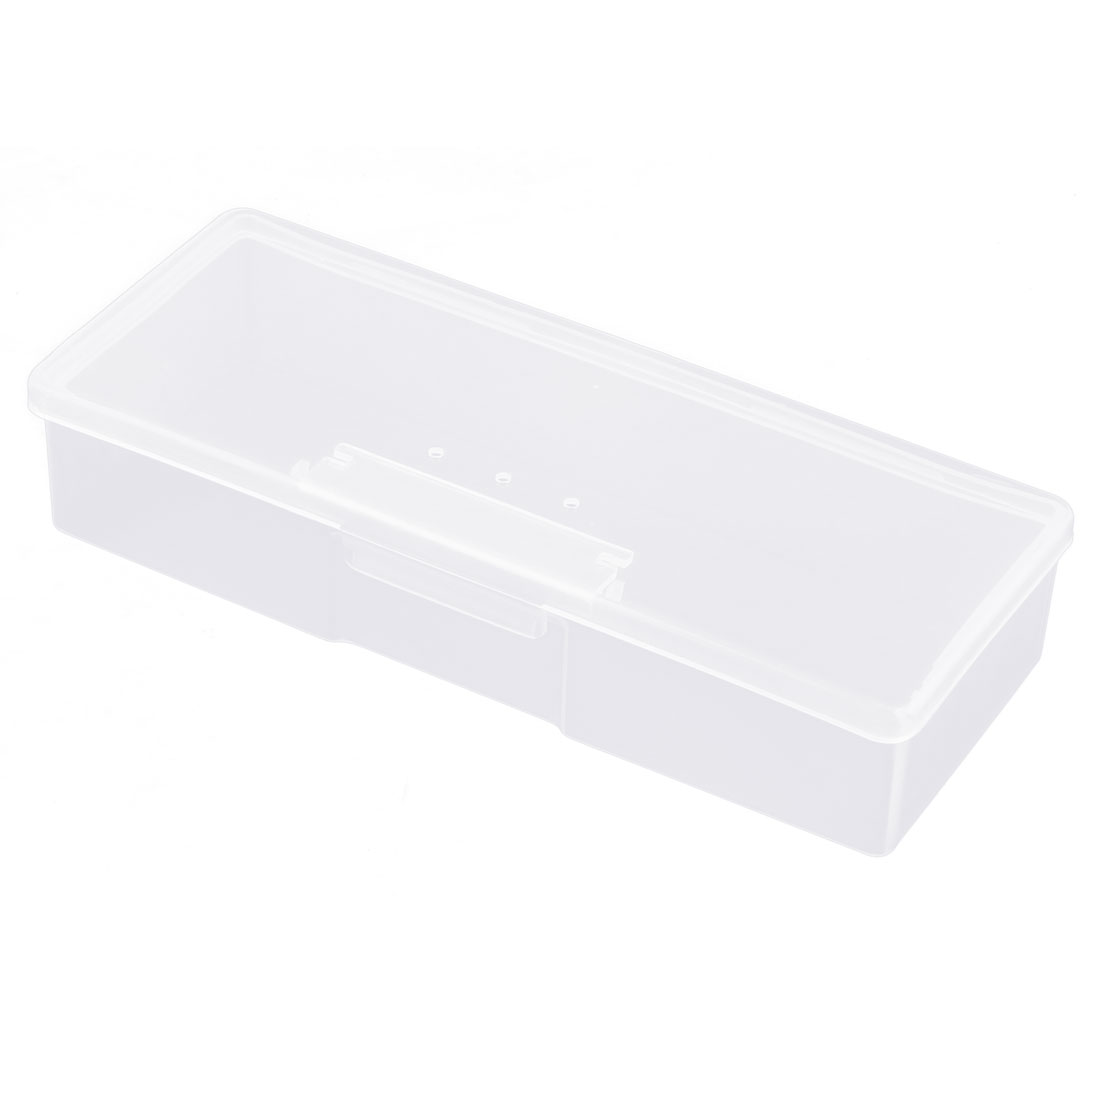 Lady Plastic Single Slot Comestics Aseptic Cotton Storage Case Container Clear